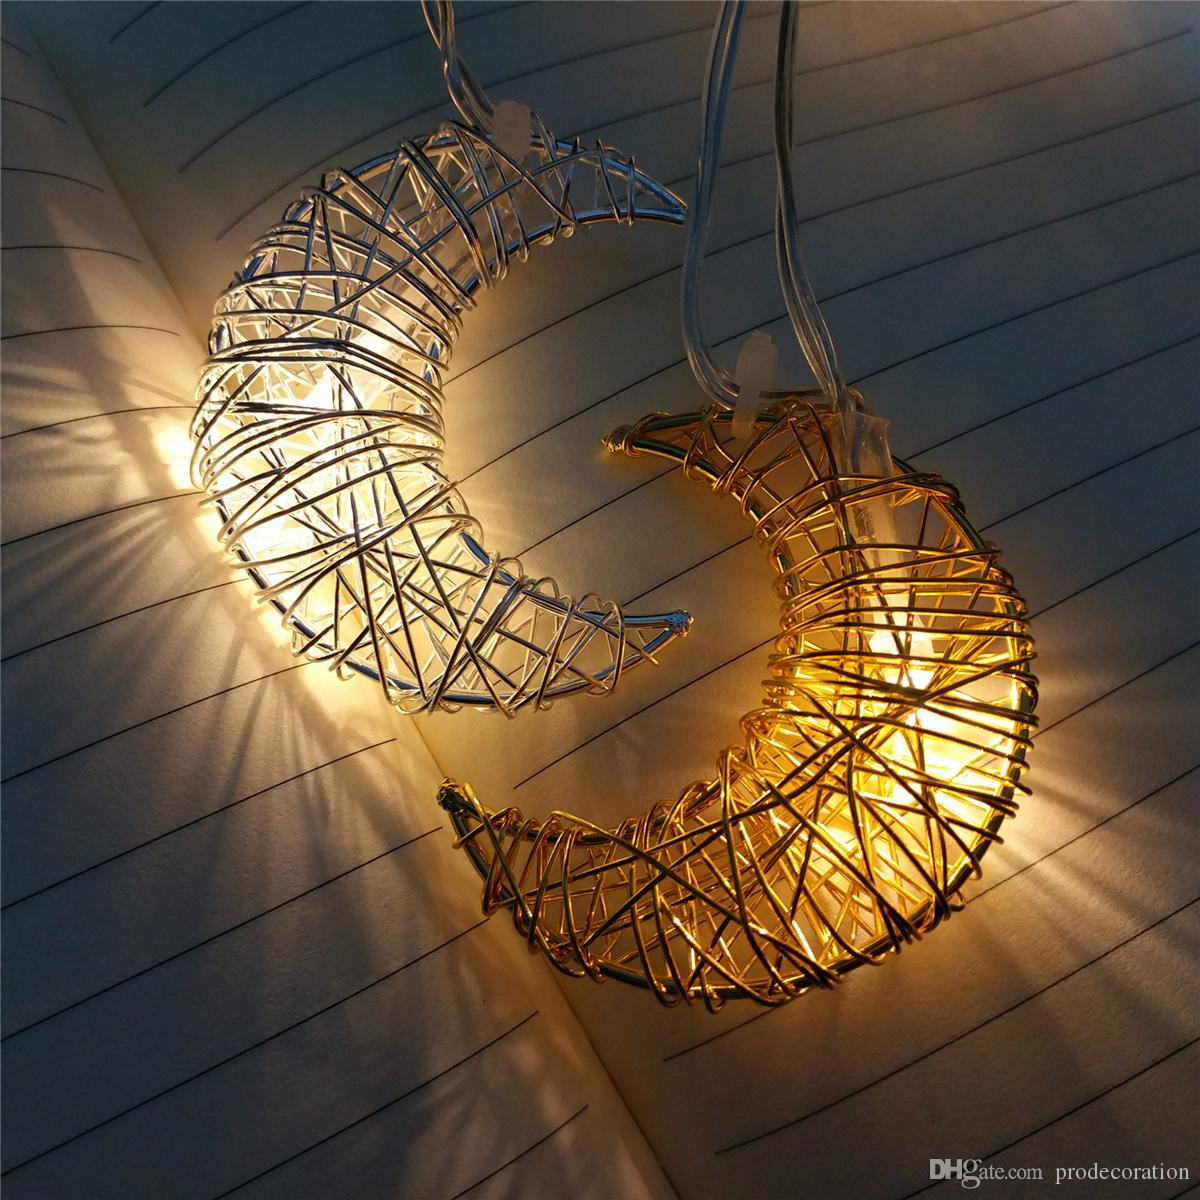 Kids Room Decoration Wire Light String Gold Silver Moon Festival Christmas Birthday Party Girl Room Decoration Pendant Gifts